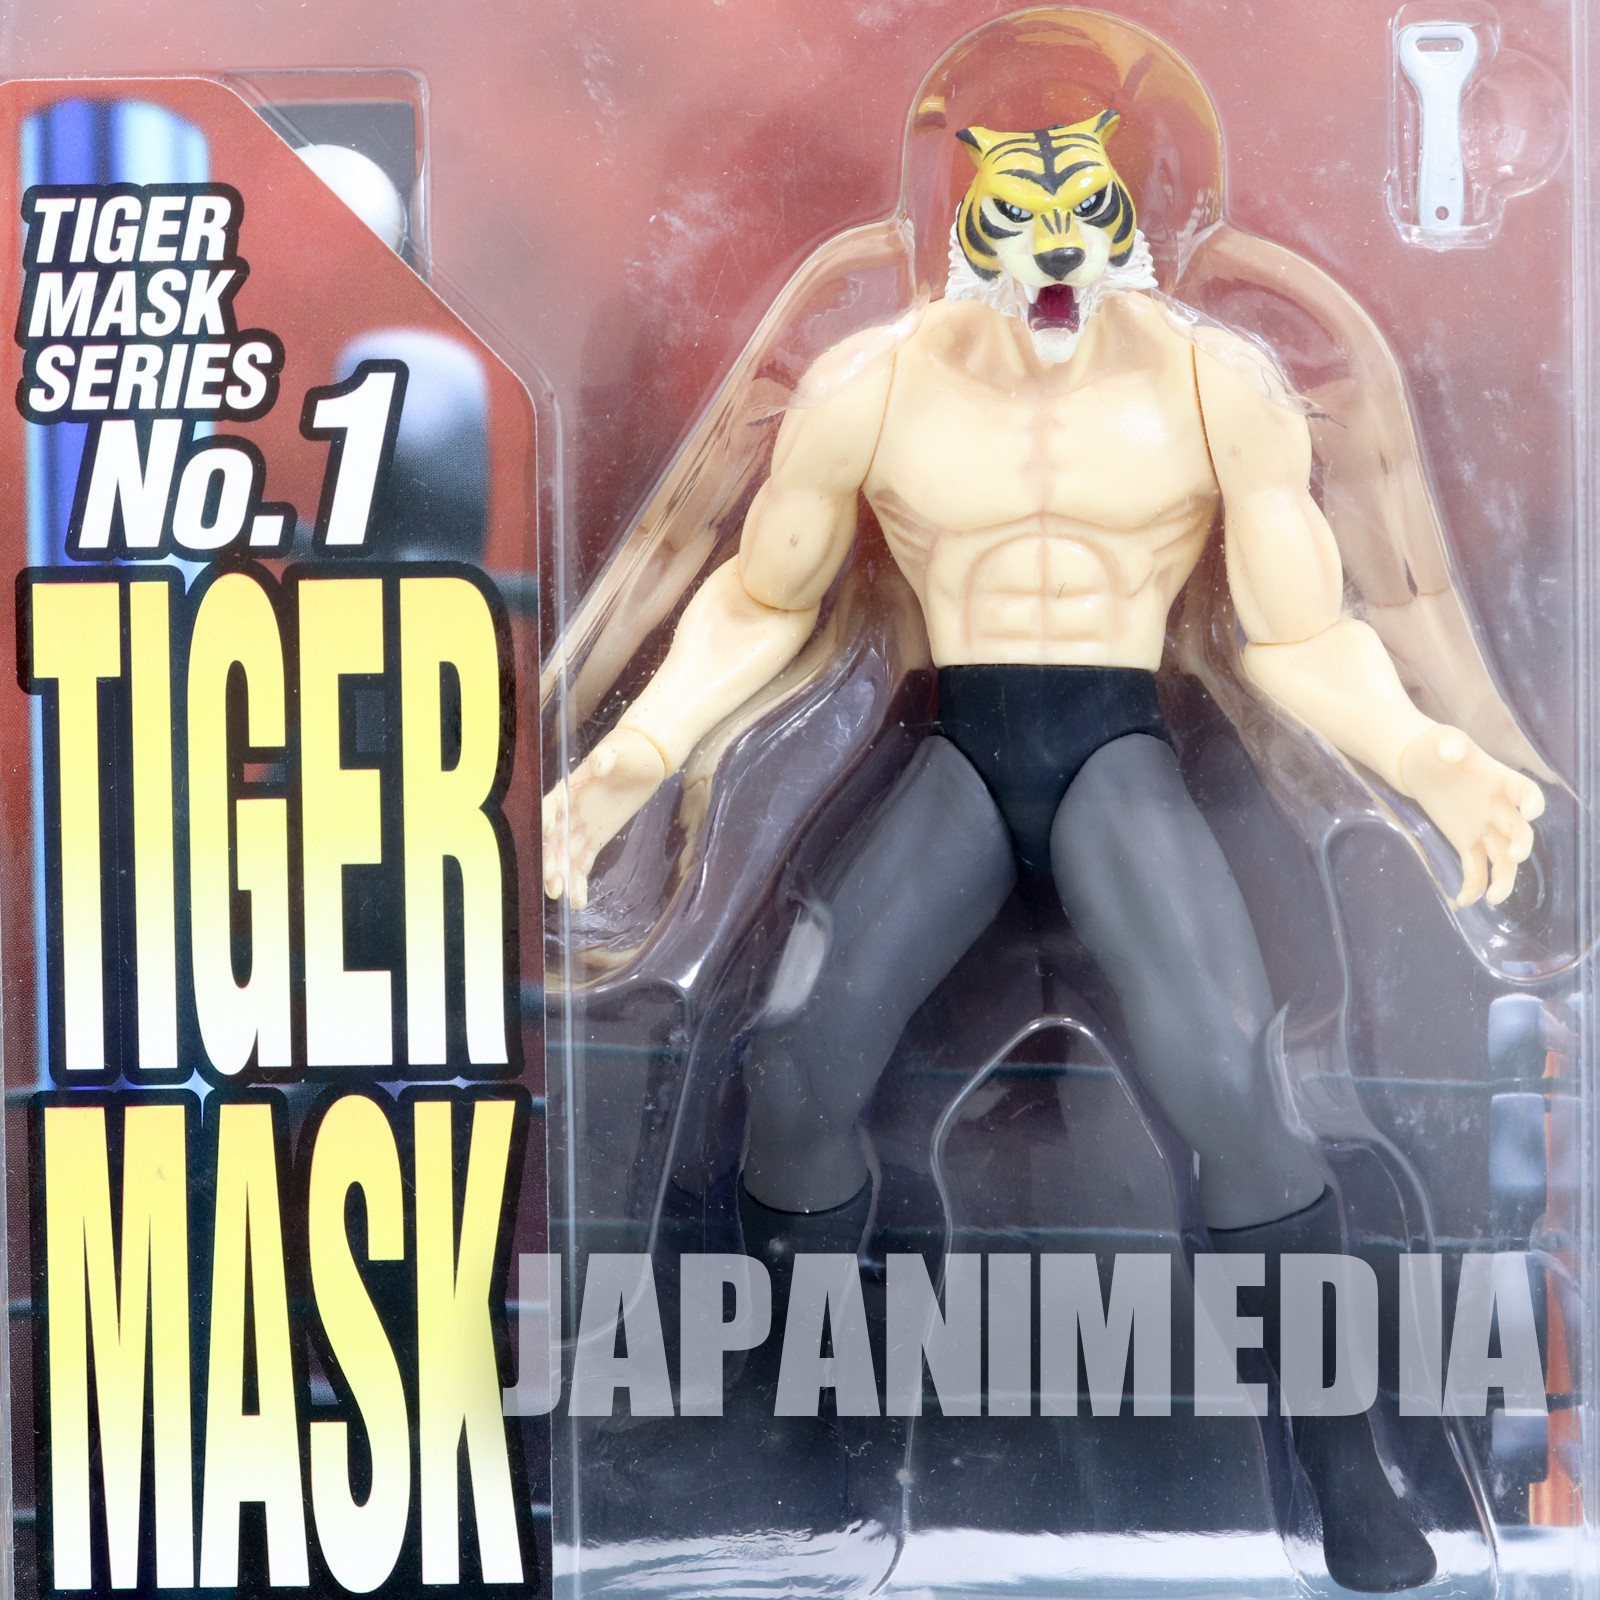 Tiger Mask Violence Action Figure XEBEC Toys JAPAN ANIME MANGA Pro Wrestling